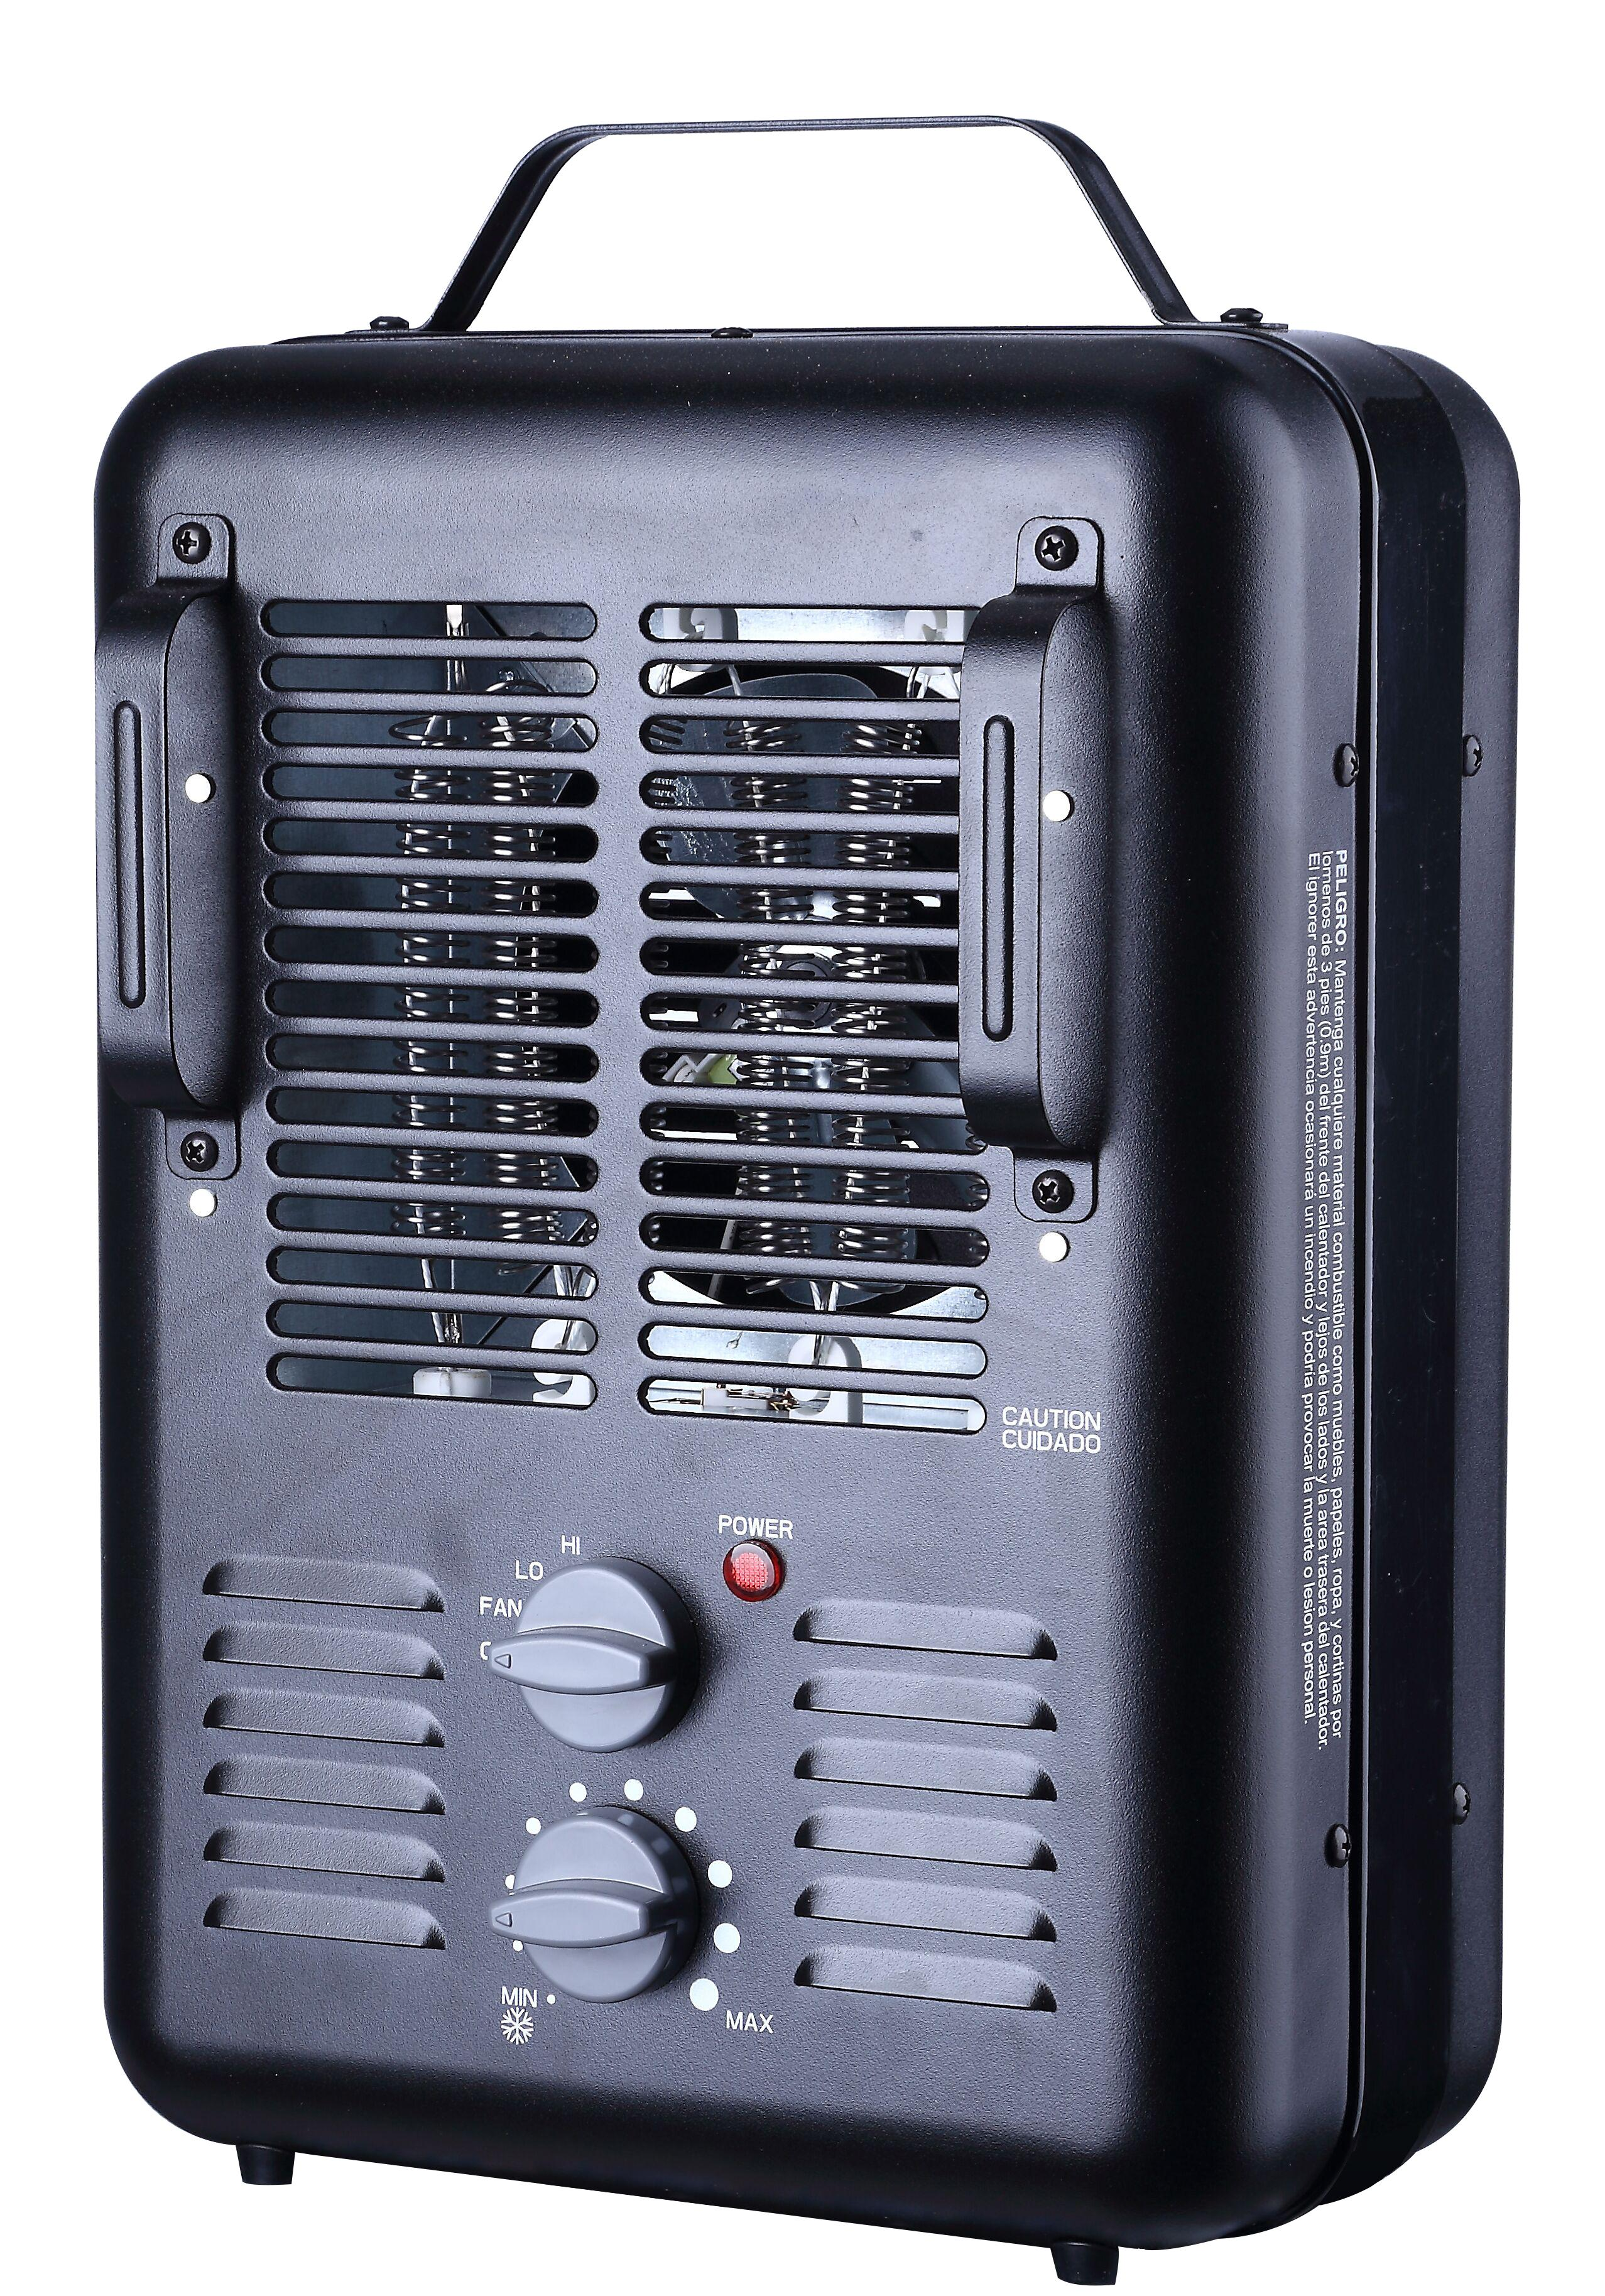 Hdb 2 Room Heater: Utility 'Milkhouse' Style Electric Space Heater #DQ1702